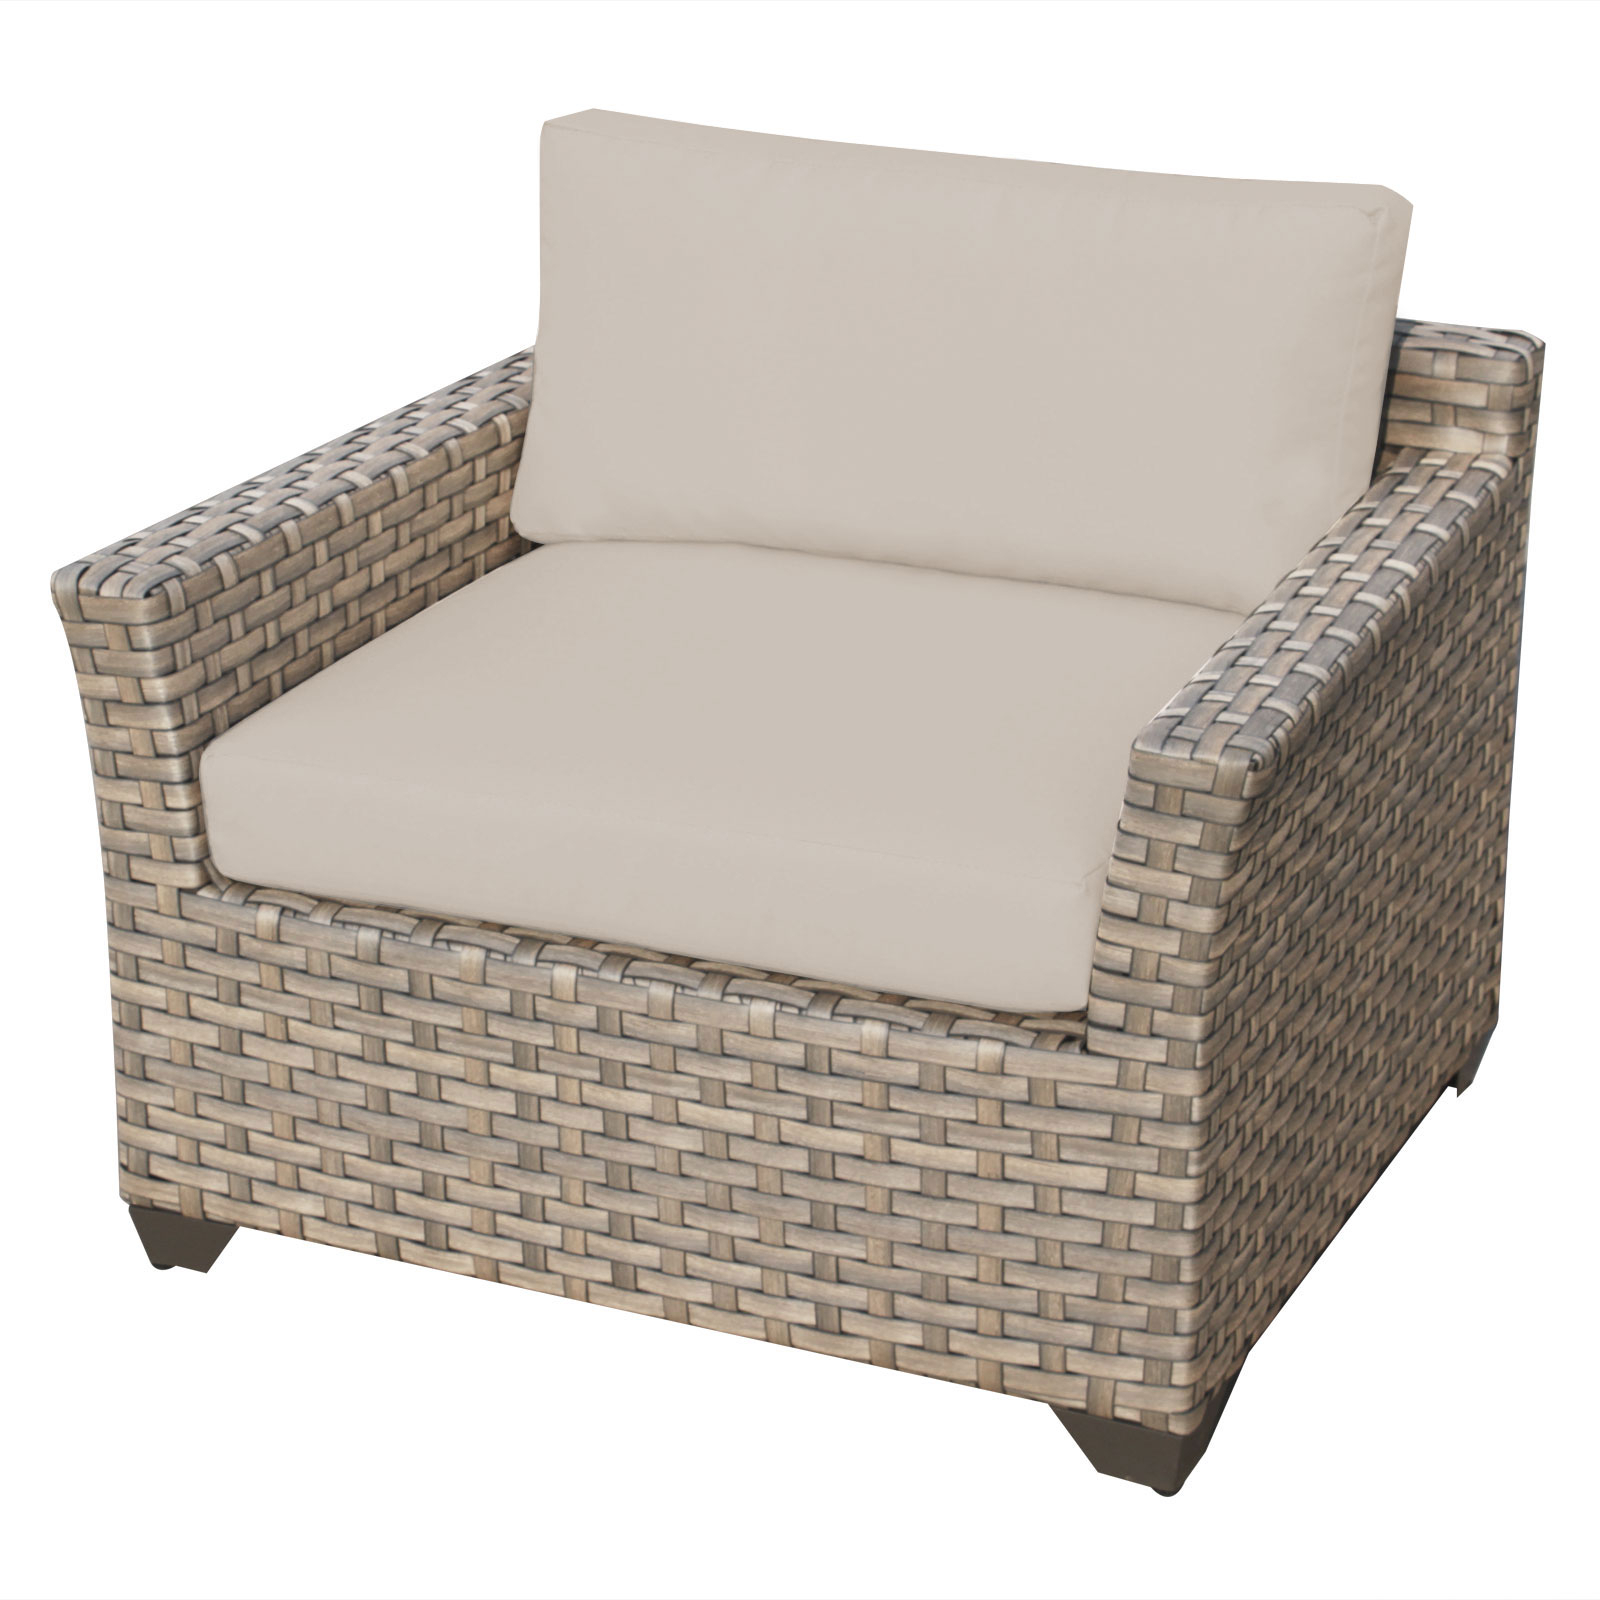 Hampton 13 Piece Outdoor Wicker Patio Furniture Set 13a Pertaining To Widely Used Outdoor 13 Piece Wicker Patio Sets With Cushions (View 17 of 25)